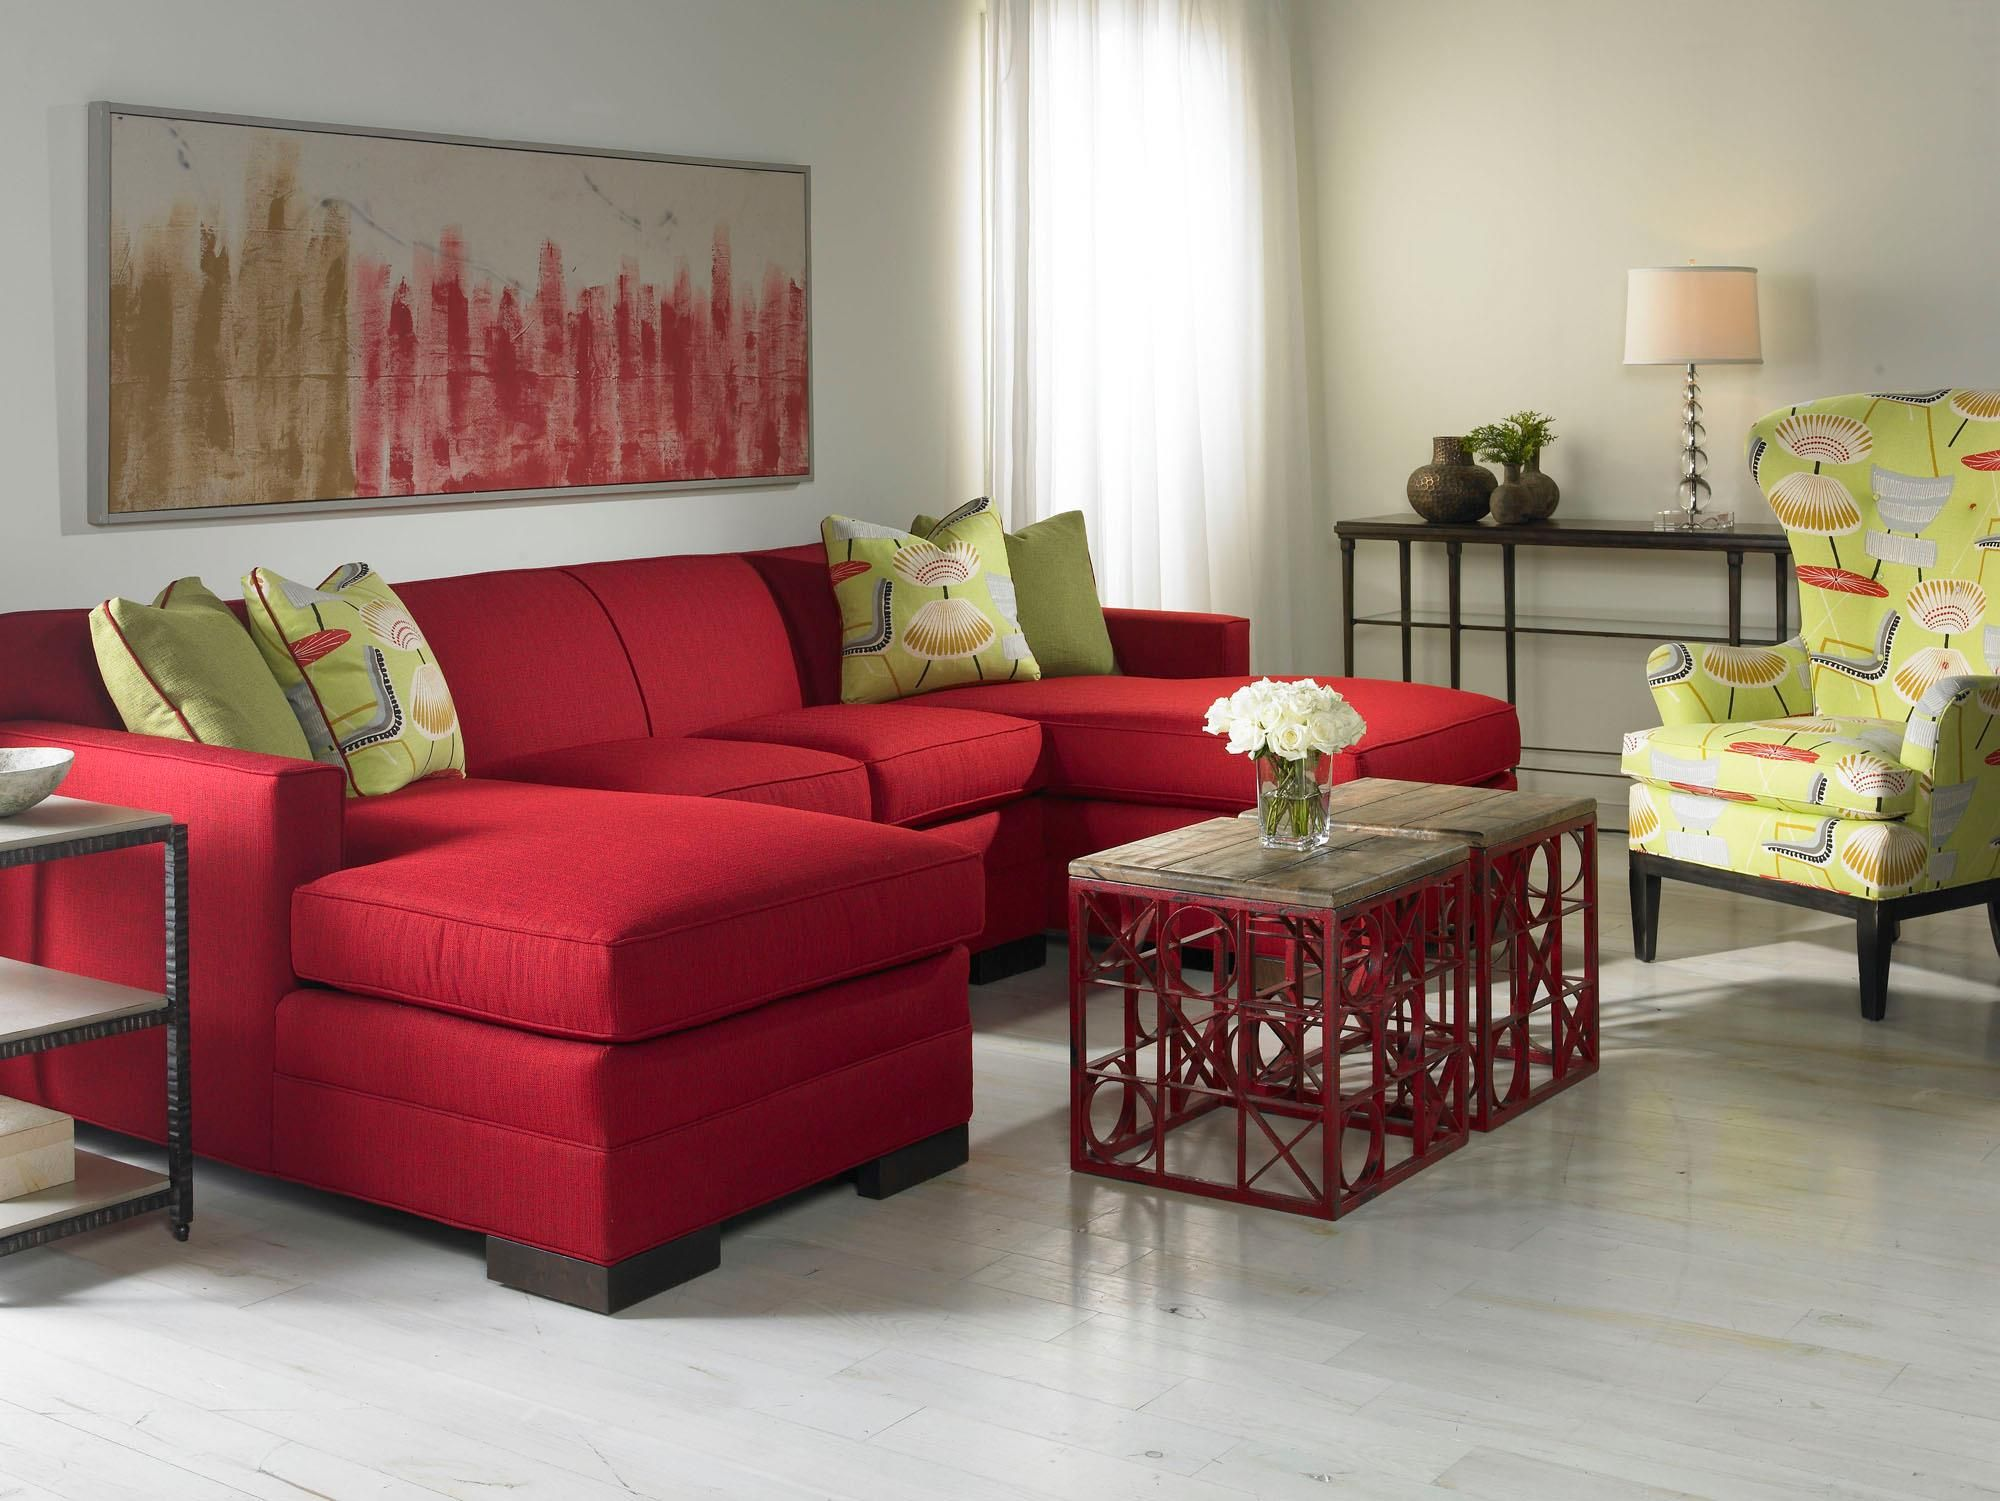 American Bungalow Collection From Vanguard Furniture